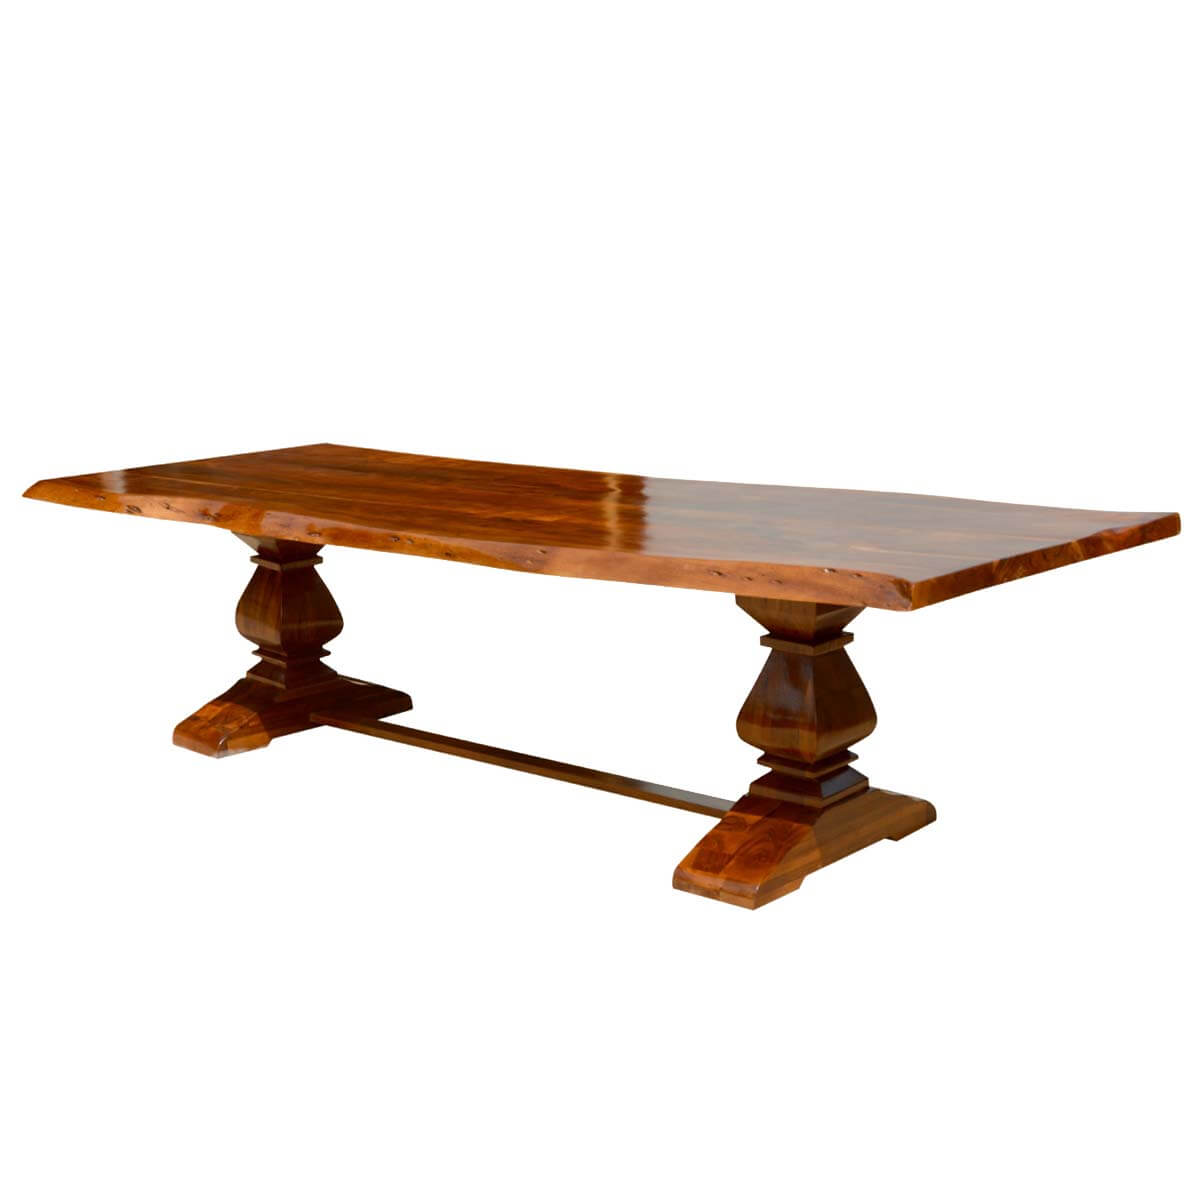 Live Edge Acacia Wood Trestle Dining Table : 73912 from www.sierralivingconcepts.com size 1200 x 1200 jpeg 61kB